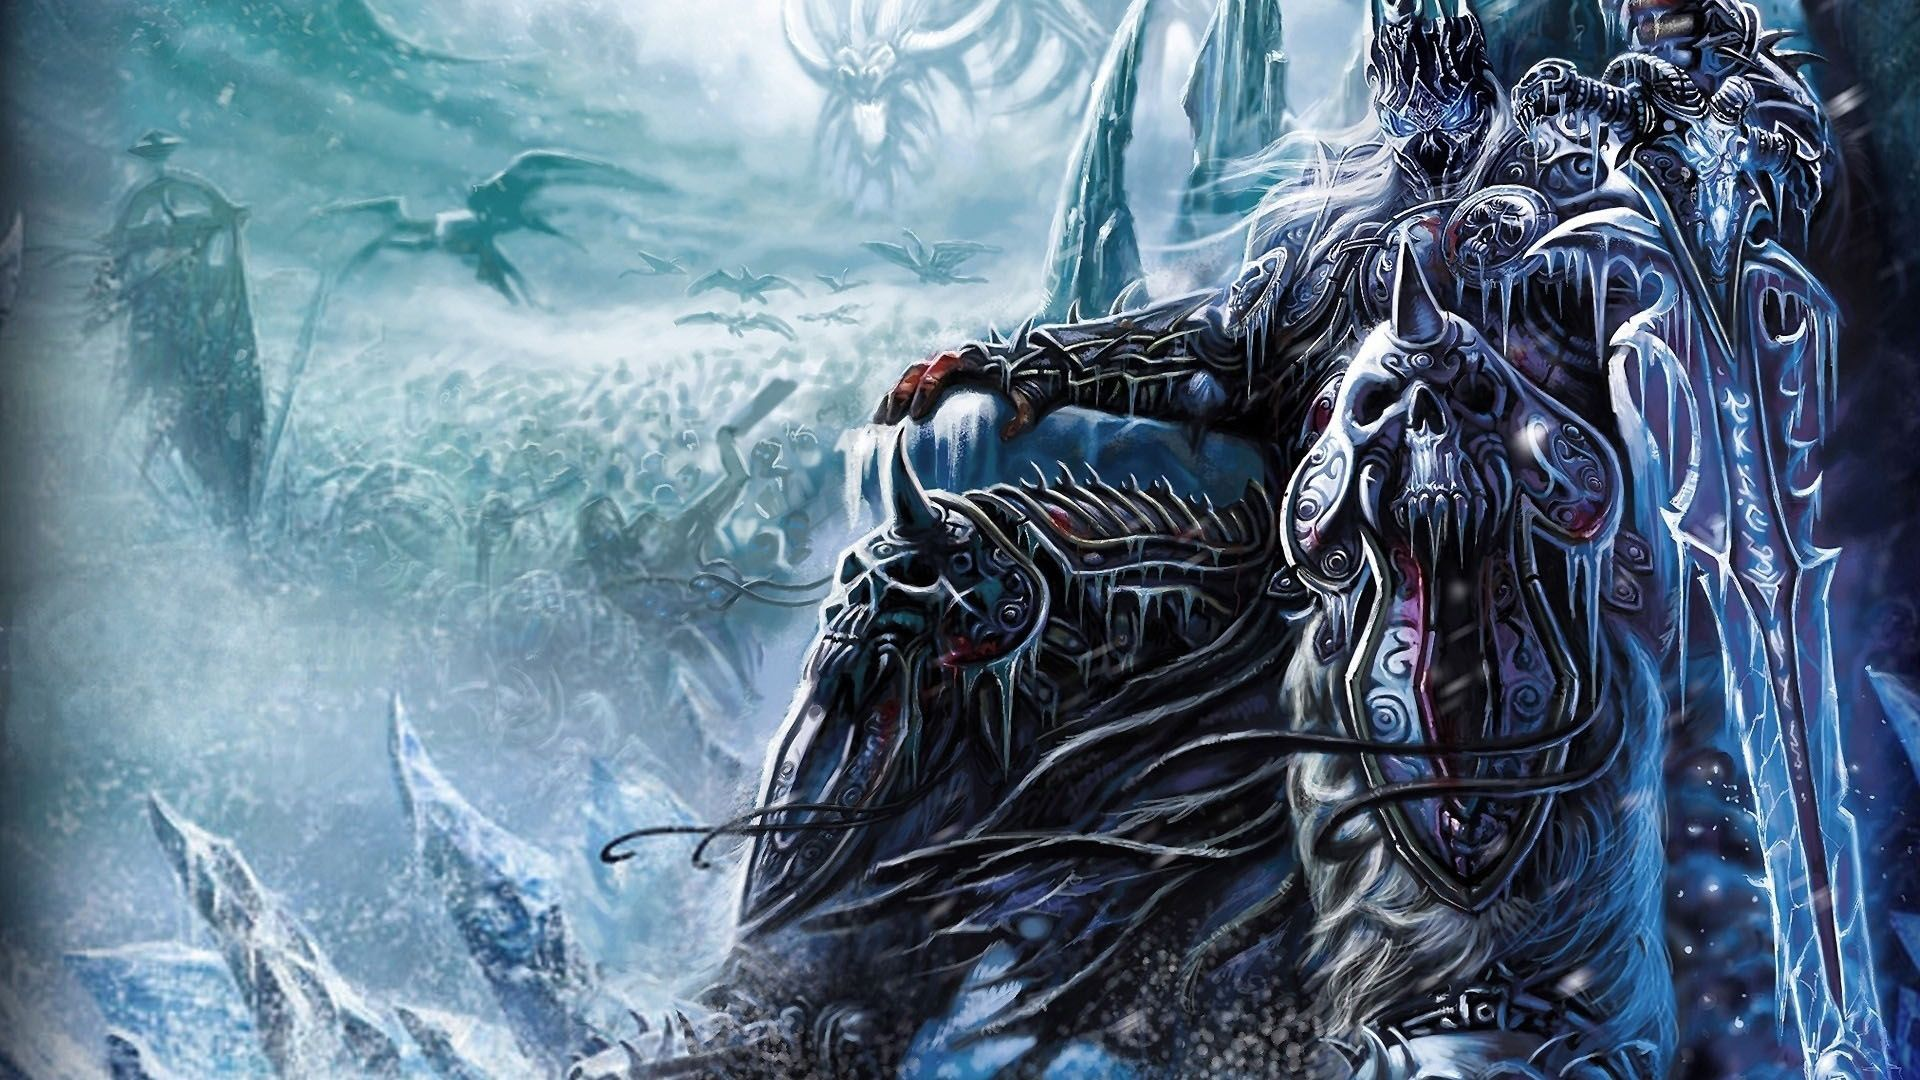 Wow The Lich King On His Iced Throne 1920x1080 Full Hd 16 9 Wallpaper 2068 On Wallpapermade Papel De Parede Hd Mundo Da Arte World Of Warcraft